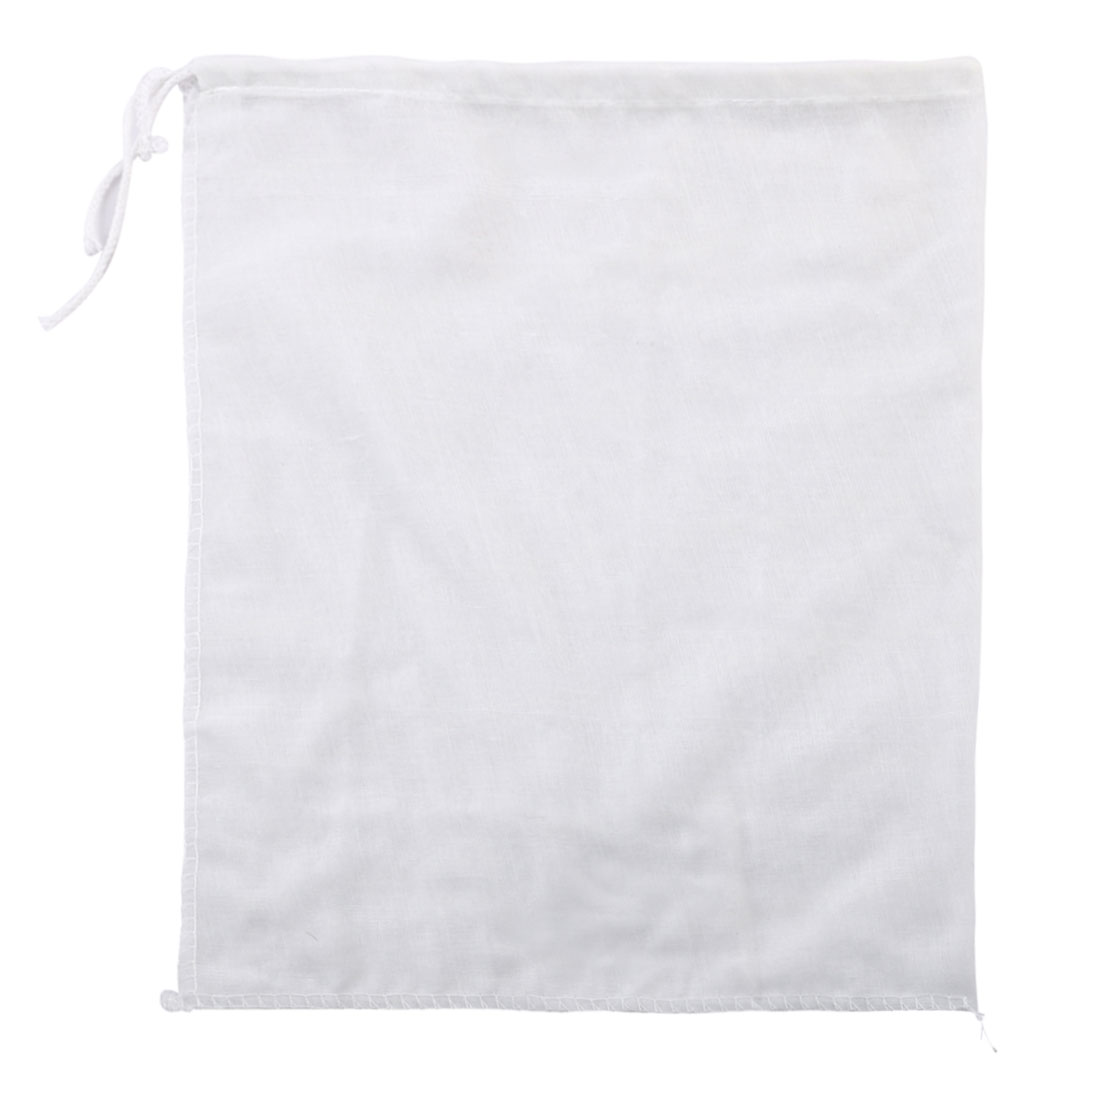 Click here to buy Linen Herb Brew Raw Food Mesh Net Strainer Filter Boil Bag White 28cm x 23cm.